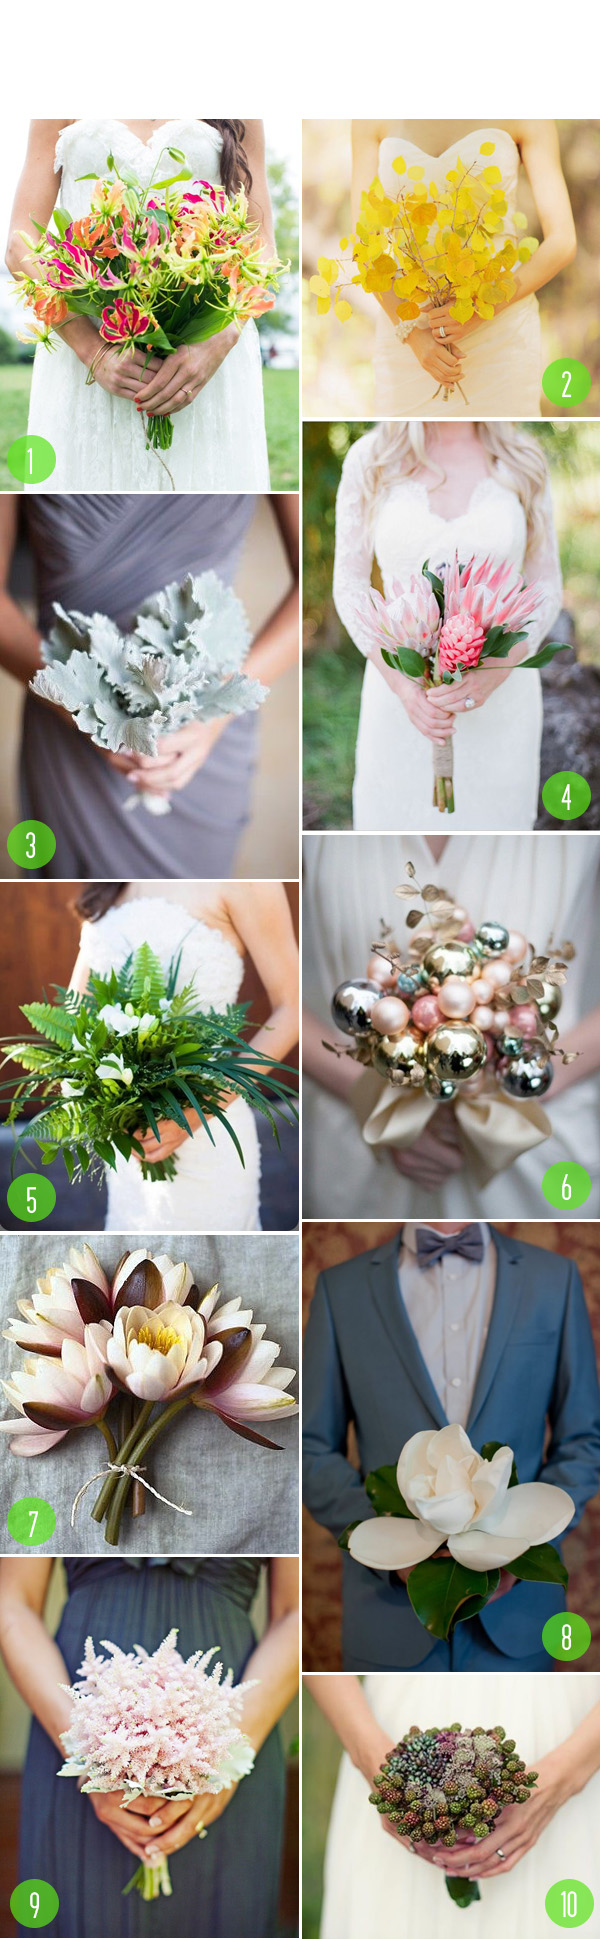 top 10: textural bouquets